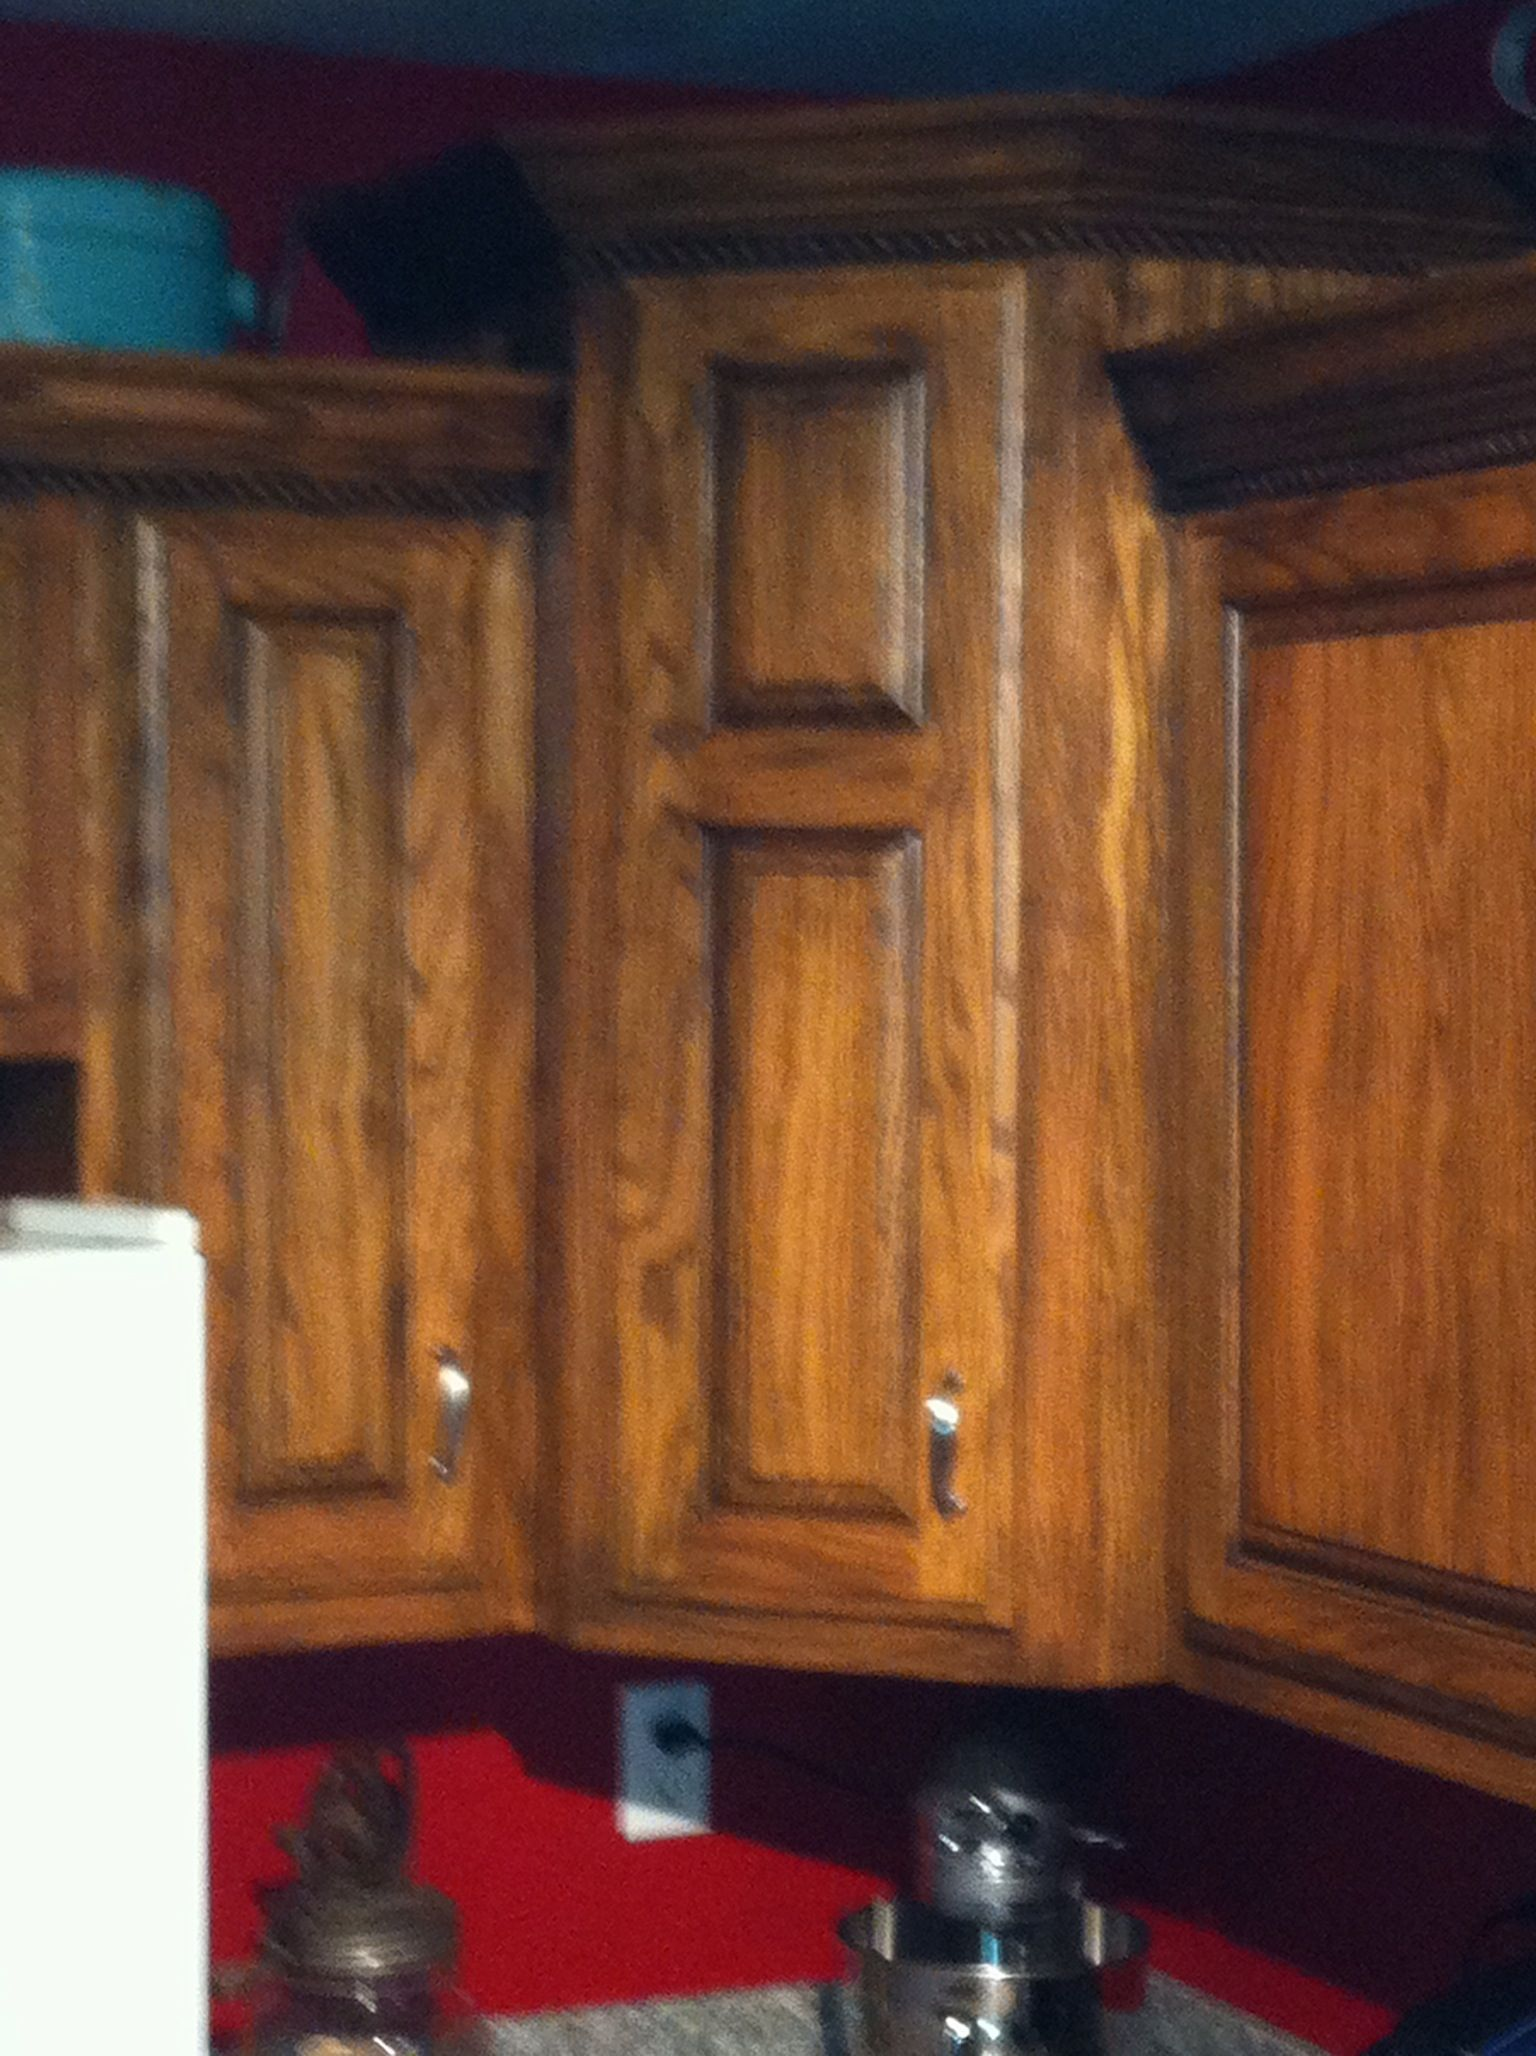 Changing My Golden Oak Cabinets Used A Black Glaze Kitchen Cabinets Updating House Glazed Kitchen Cabinets